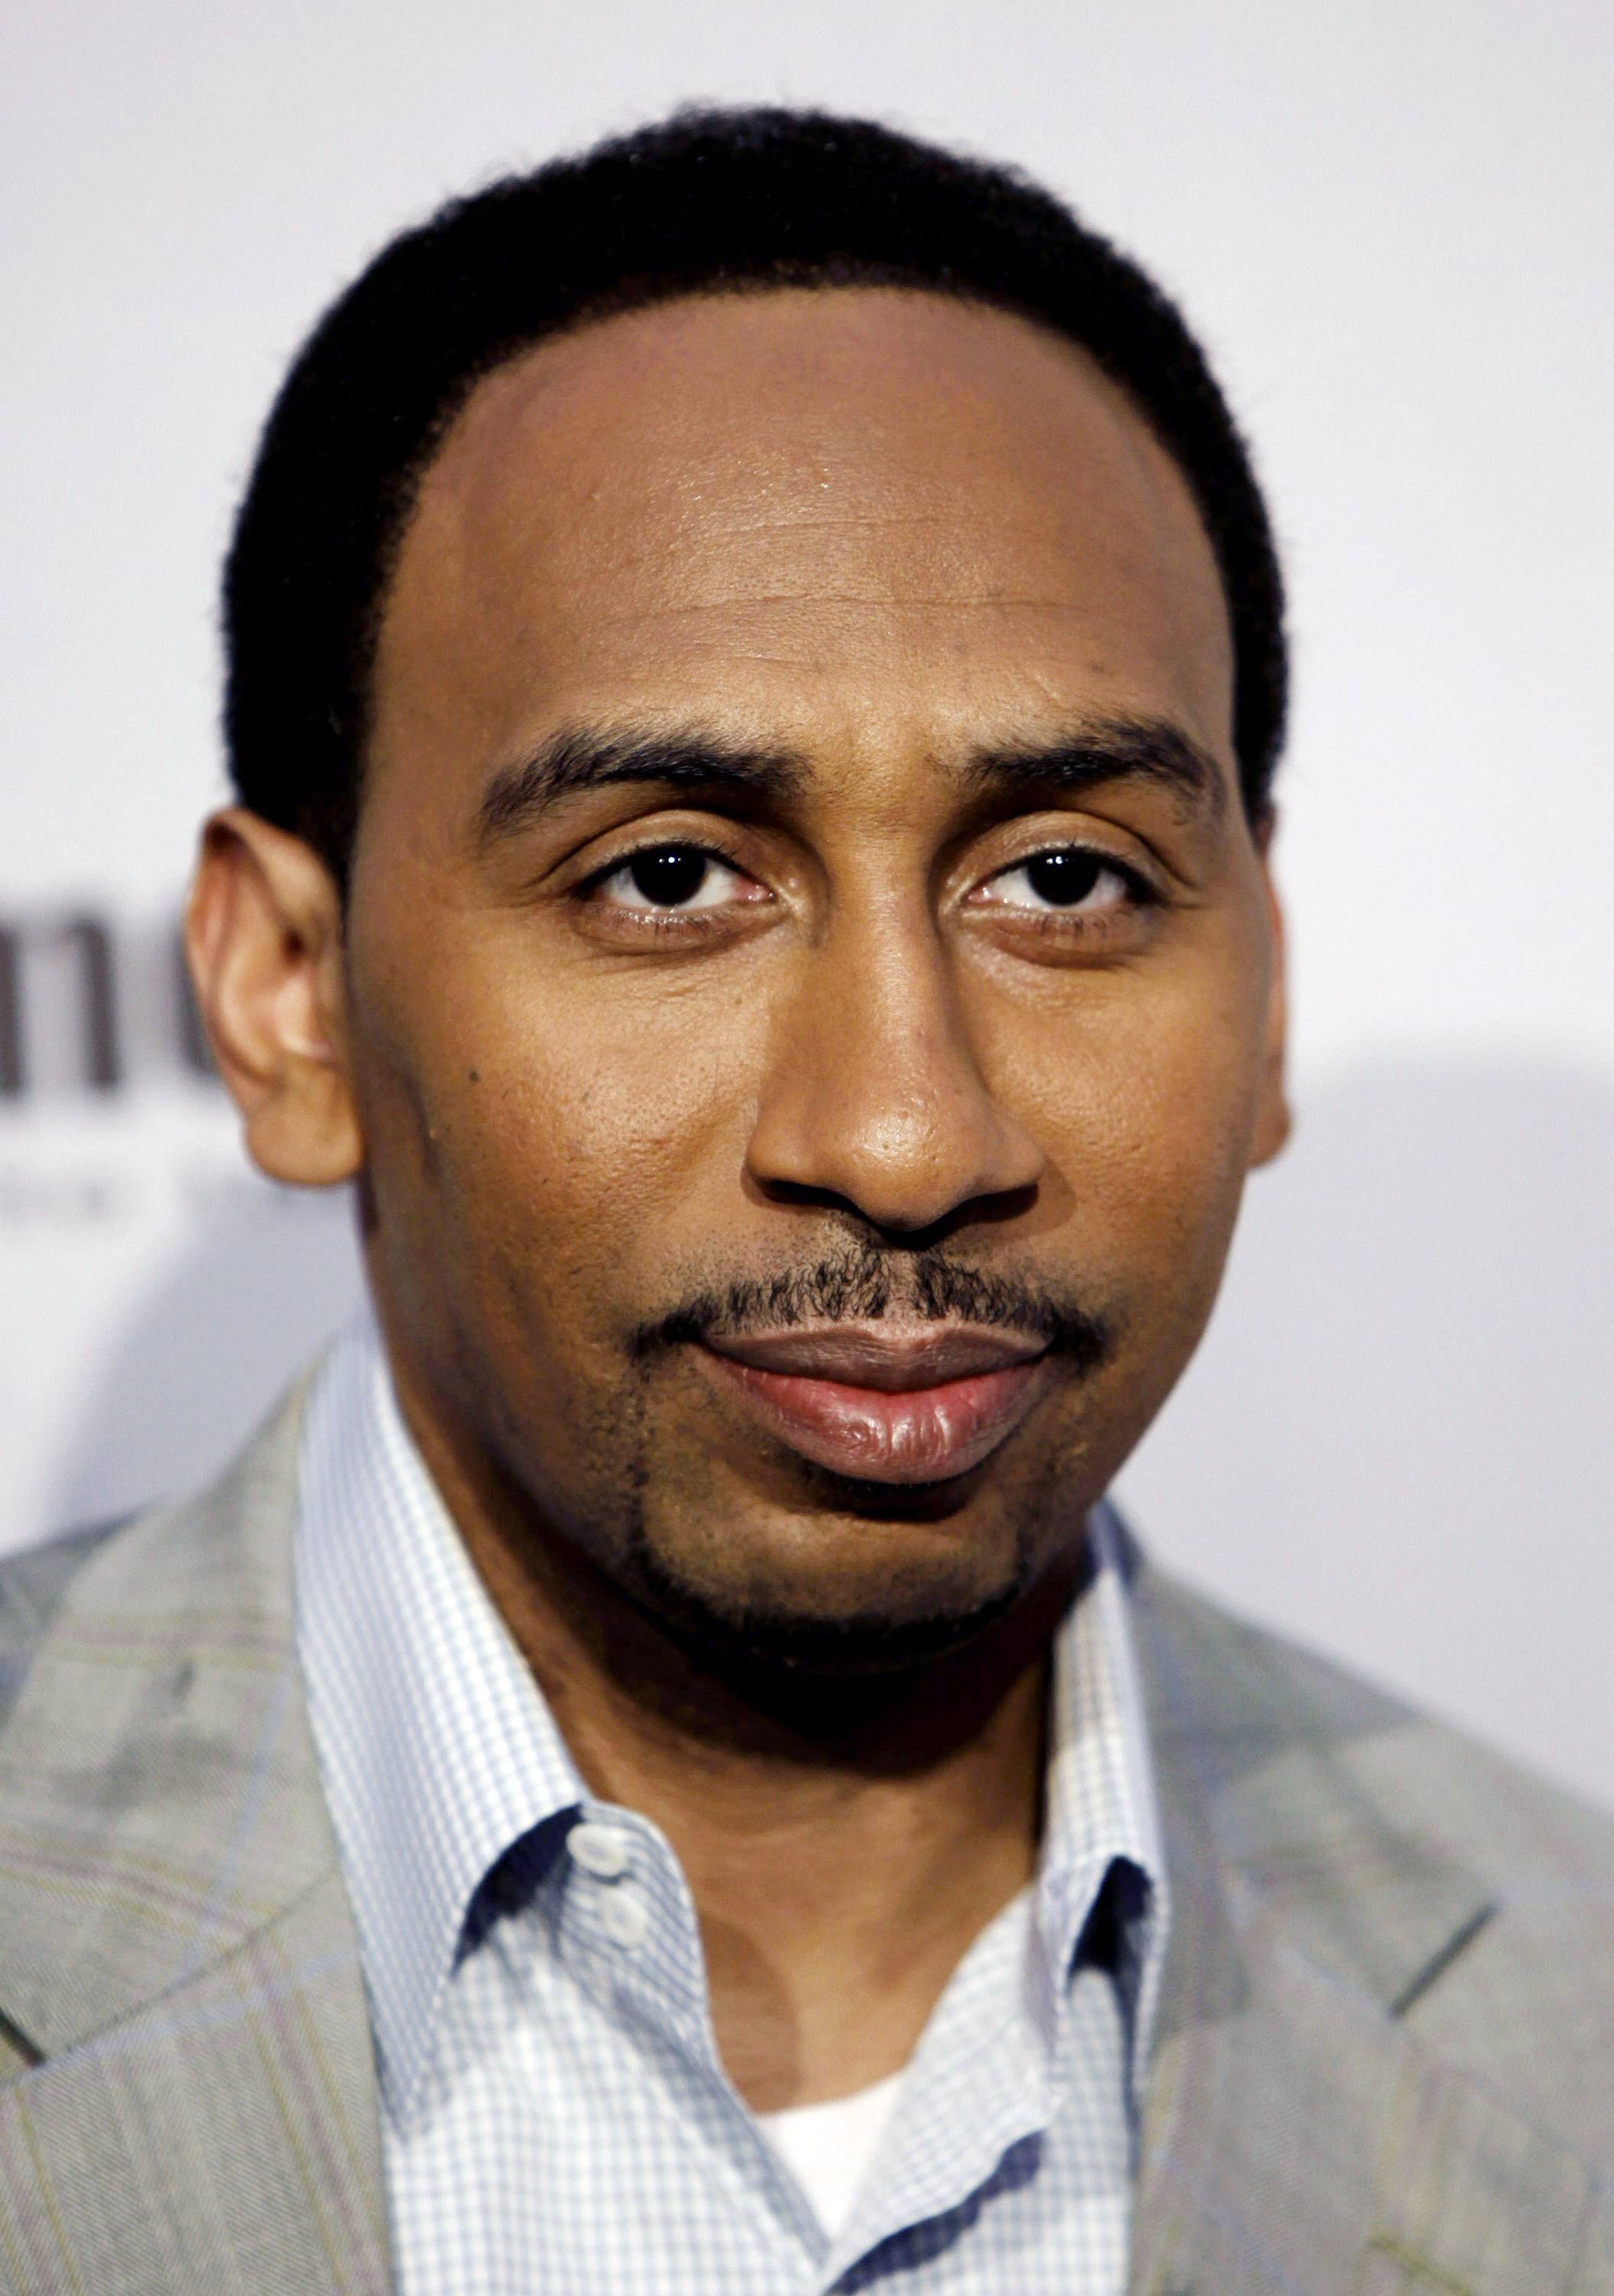 ESPN suspended sportscaster Stephen A. Smith on Tuesday for a week because of comments about domestic abuse, suggesting women should make sure they don't provoke attacks.